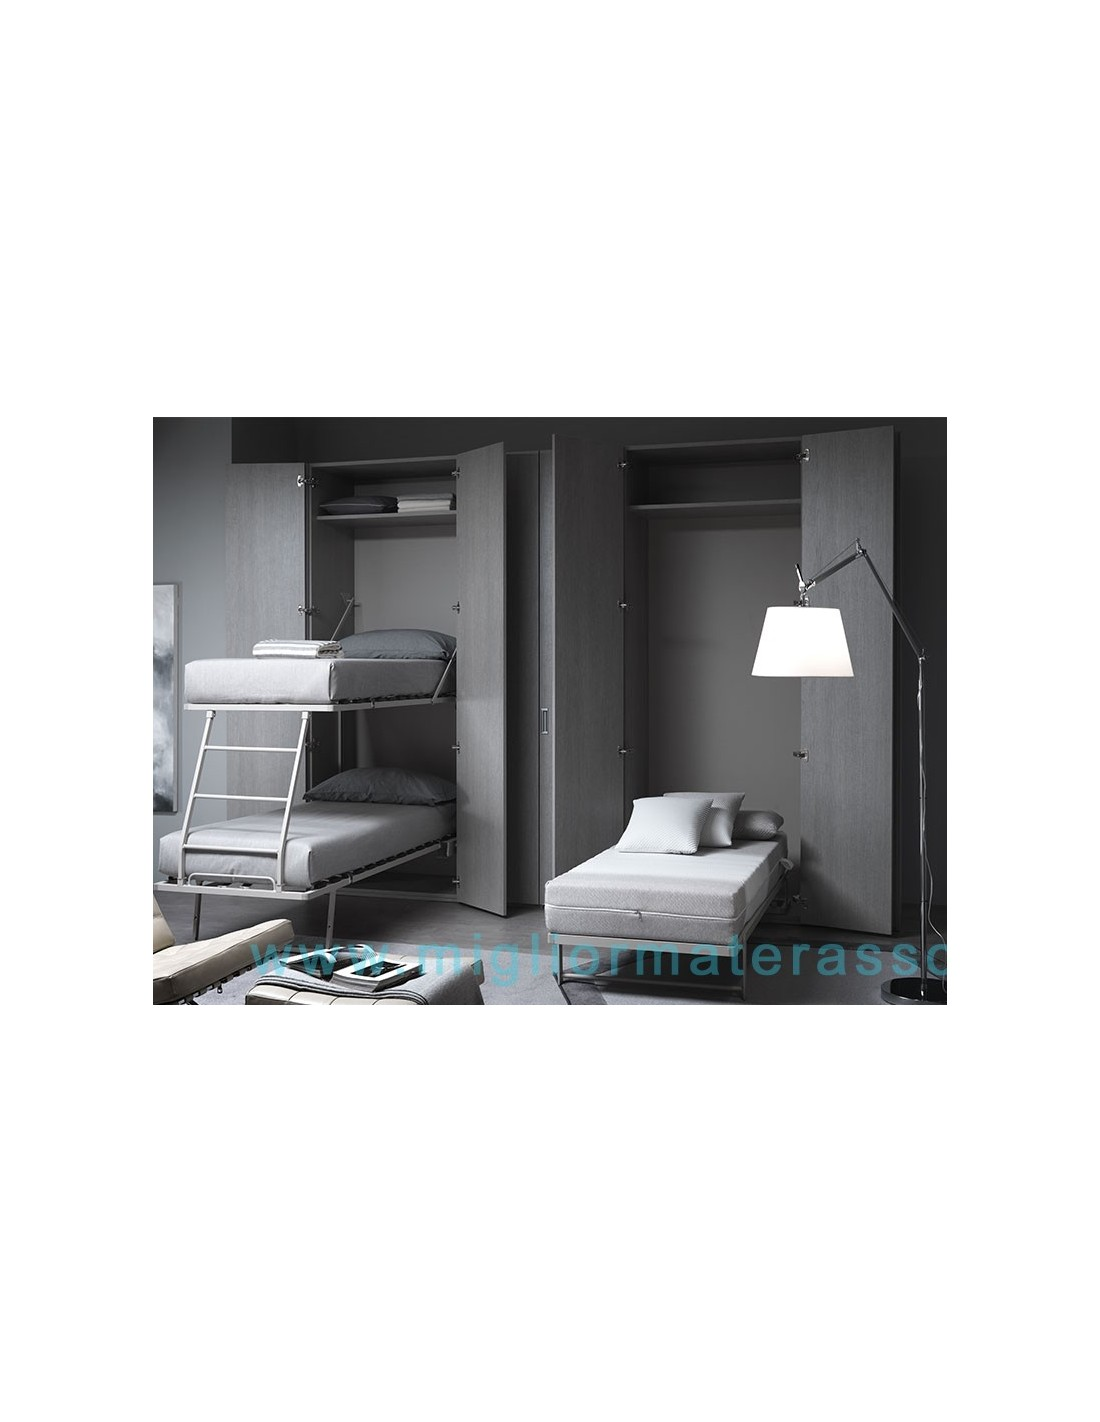 Zippo bed inside a wall with mattress to save your space 1 bed - Letto matrimoniale scomparsa ...